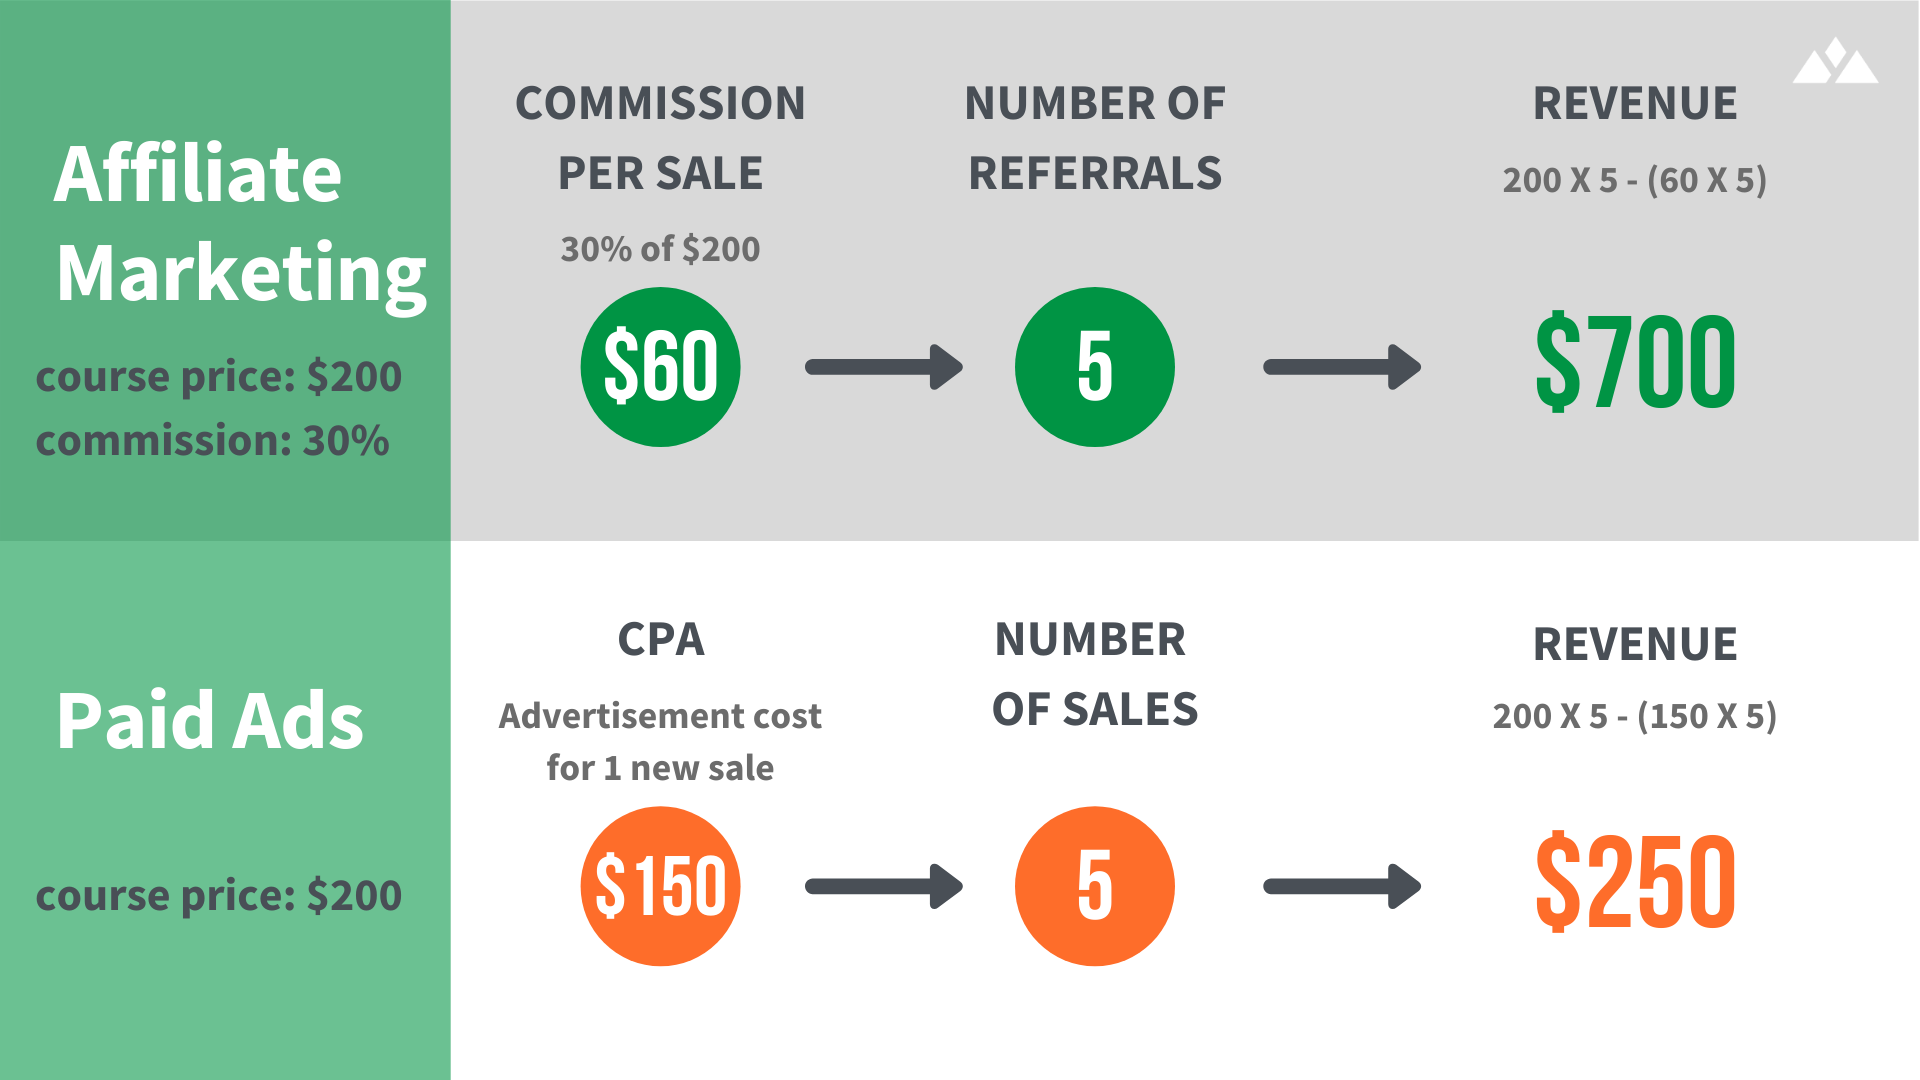 net revenue per sale after paying referral commissions to affiliates illustration versus running paid advertising